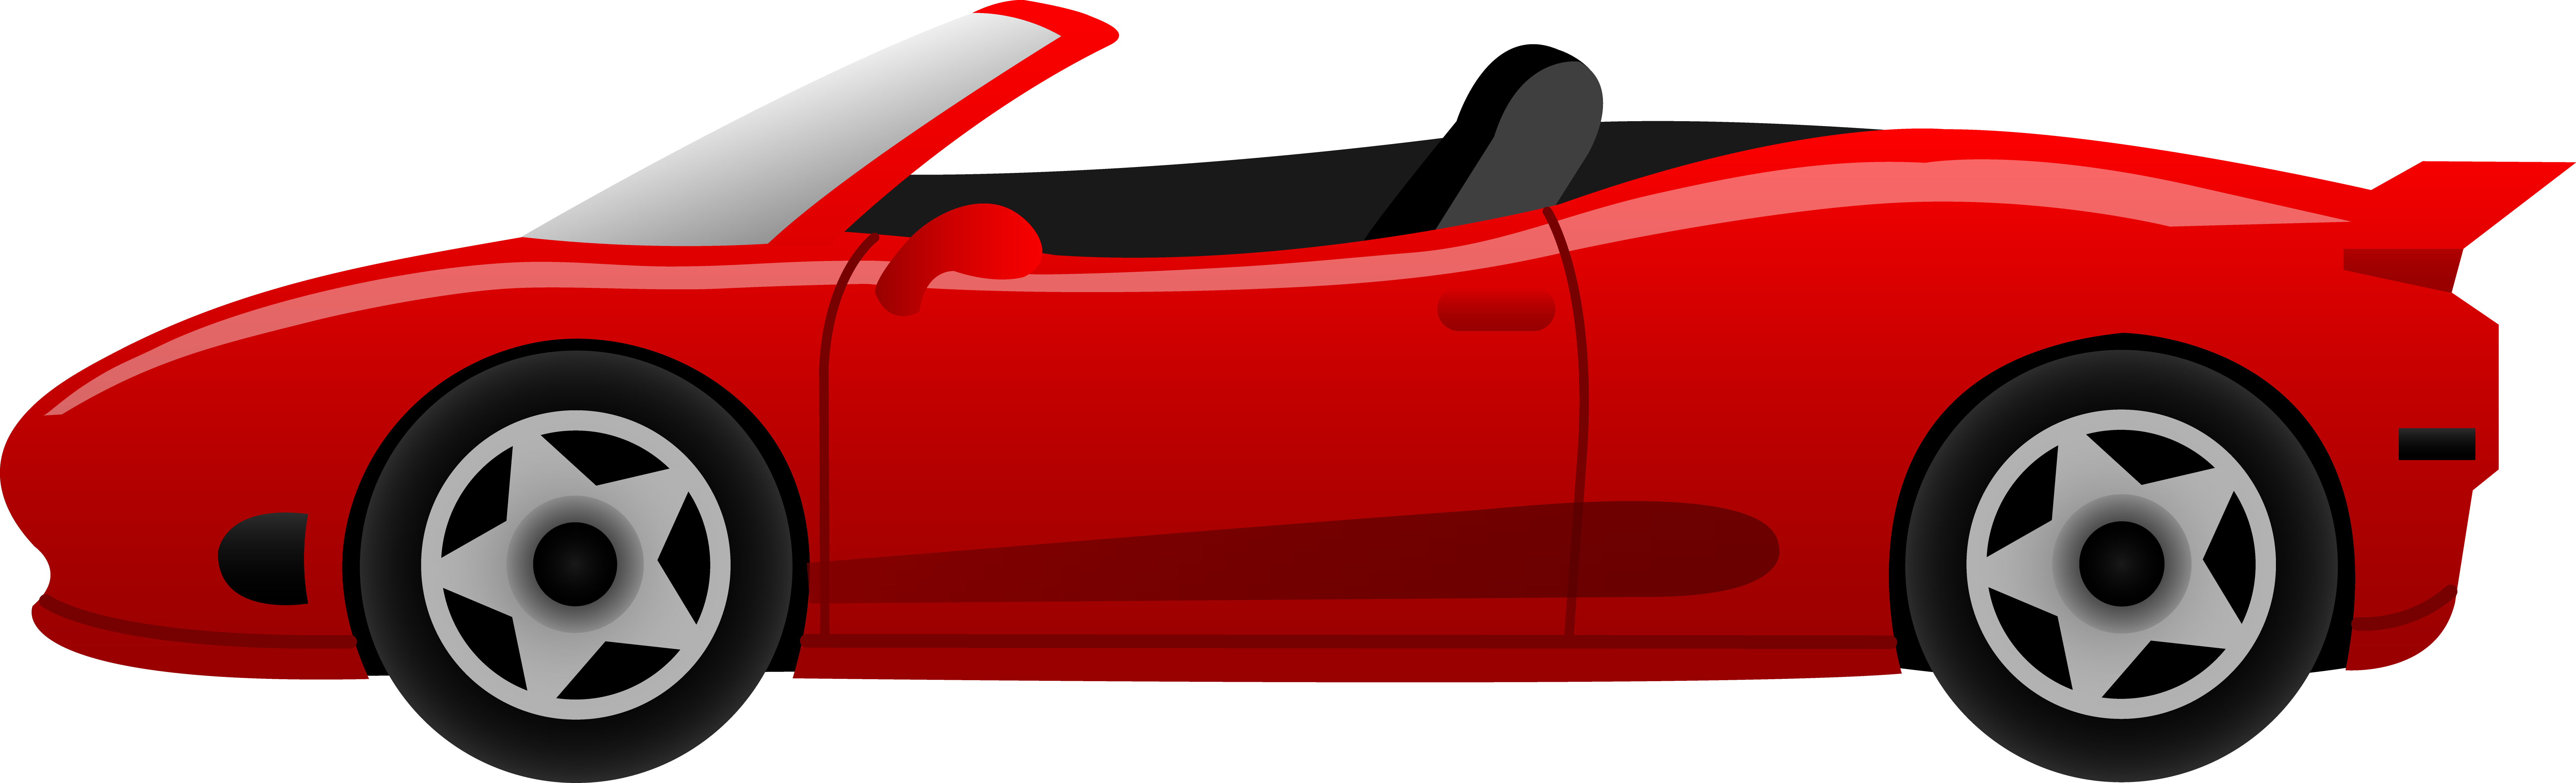 Sports Car Clipart Side View | Clipart Panda - Free ...